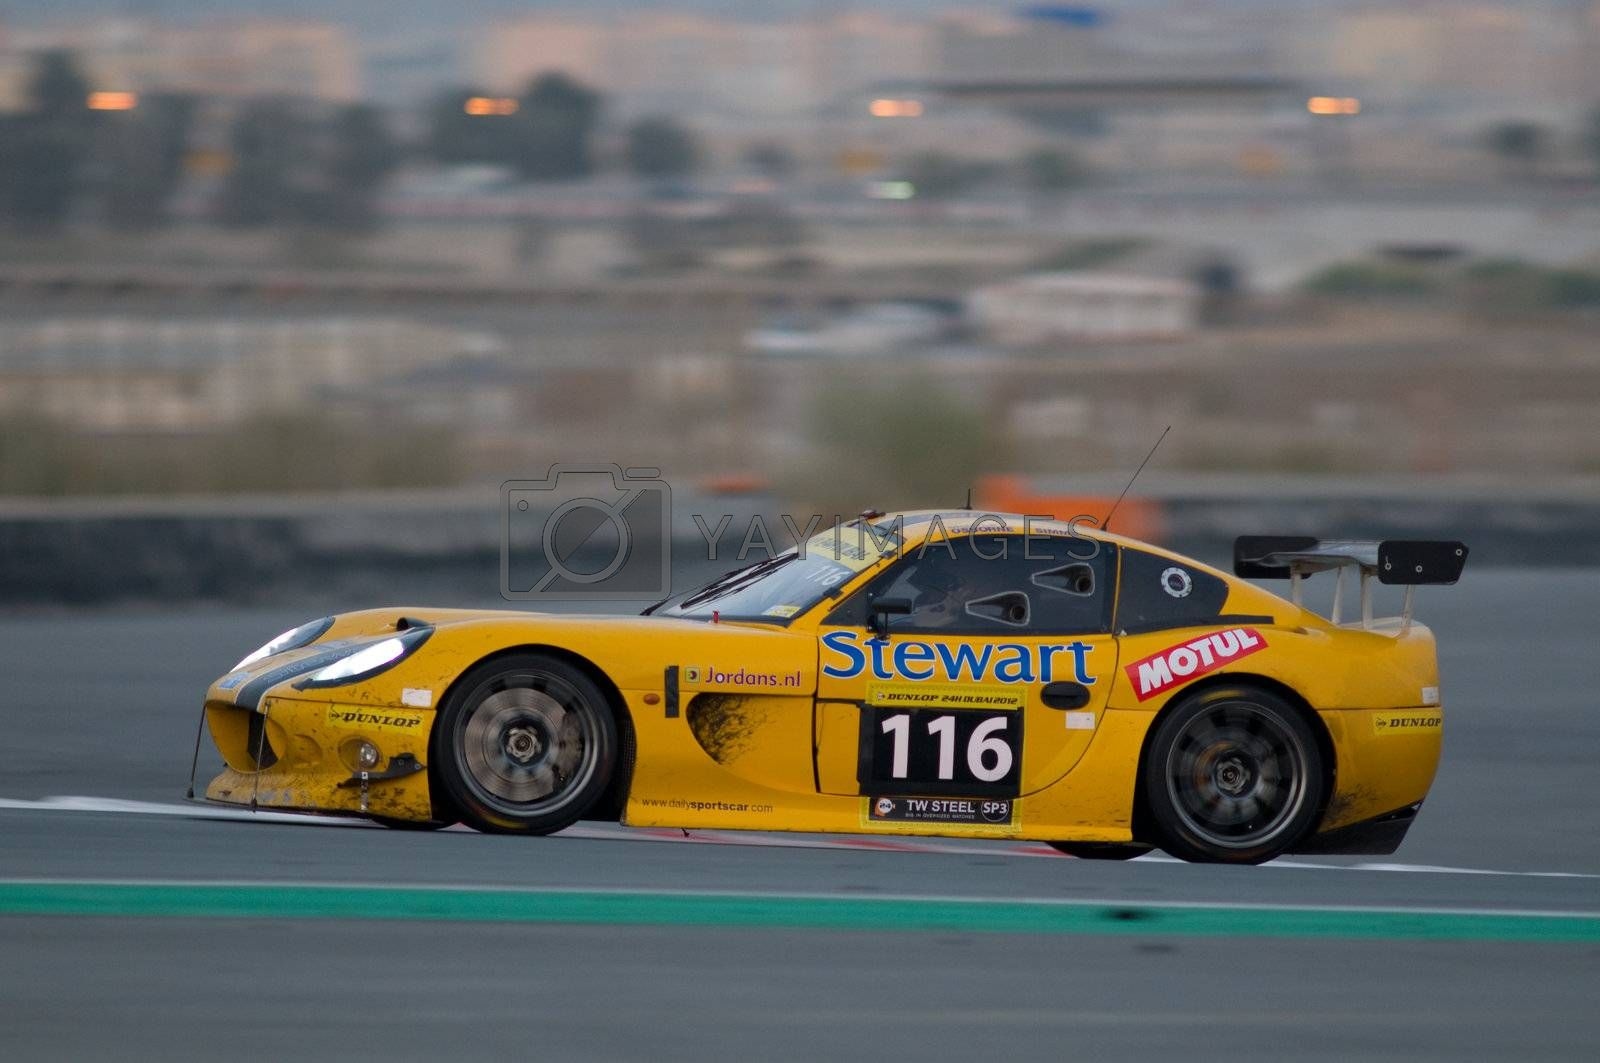 DUBAI - JANUARY 14: Car 116, a Ginetta G50 Trophy, during the morning hours of the 2012 Dunlop 24 Hour Race at Dubai Autodrome on January 14, 2012.